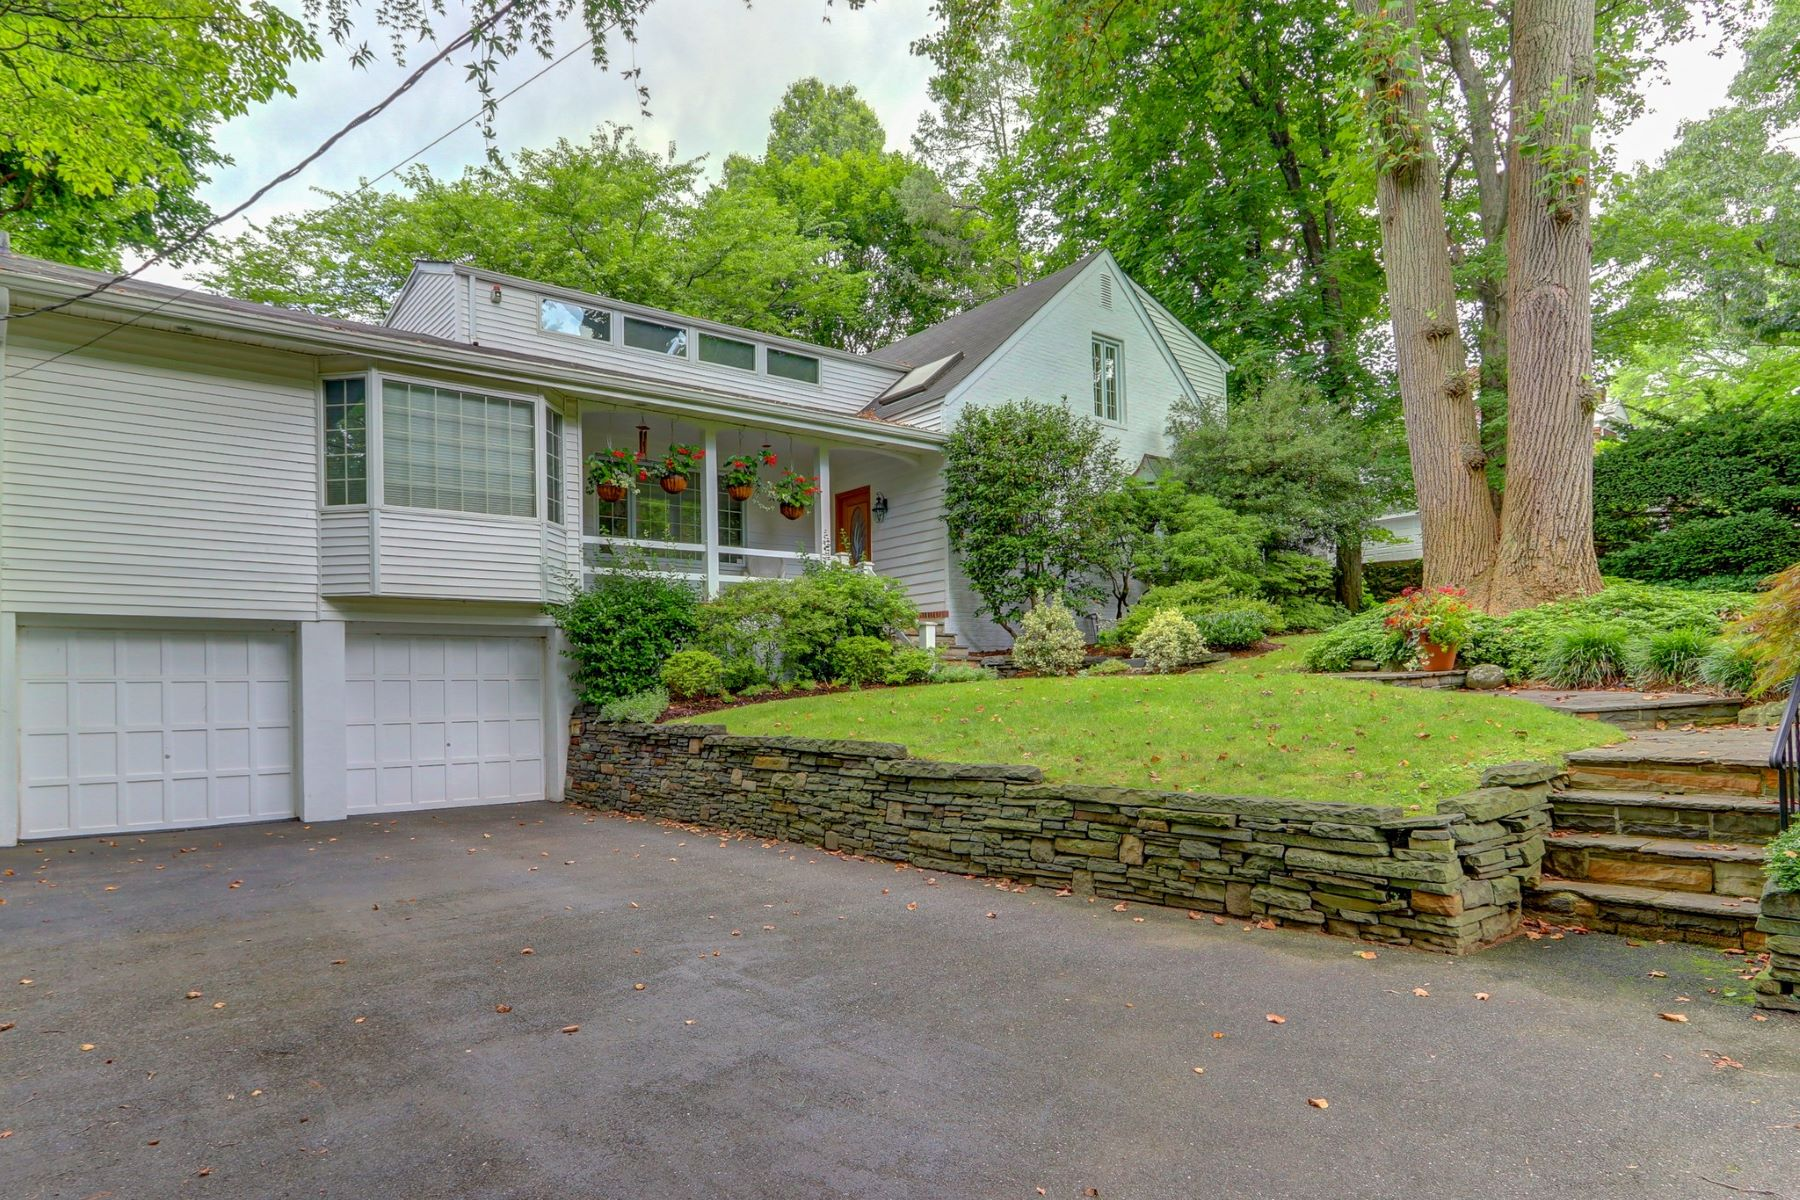 Single Family Homes for Active at Roslyn Estates 2 Hickory Hill Roslyn Estates, New York 11576 United States